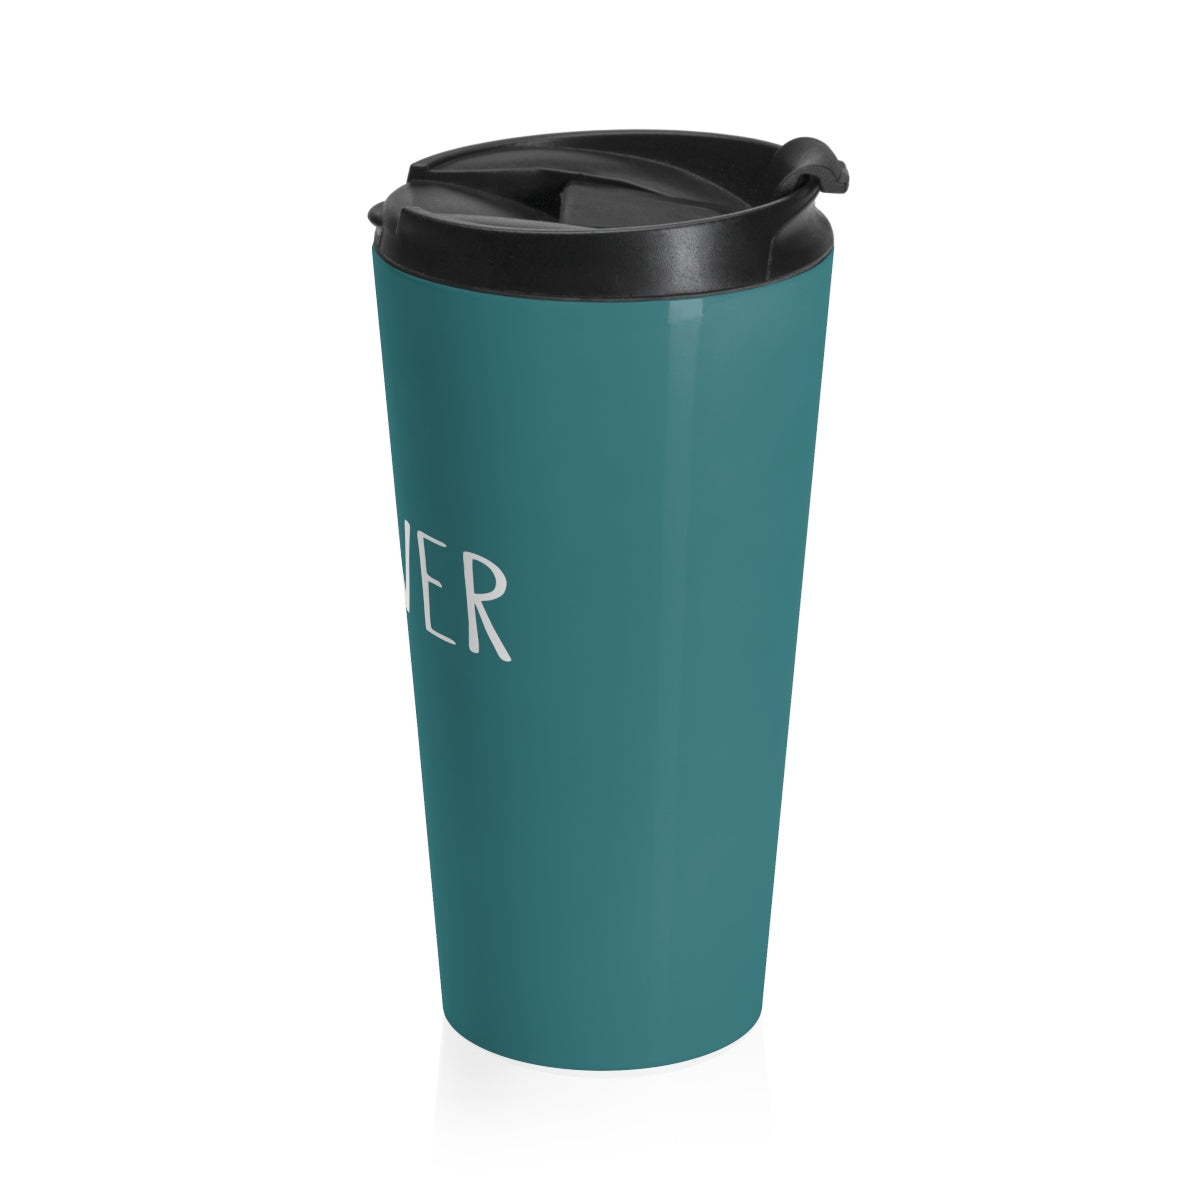 Grover Stainless Steel Travel Mug: Teal